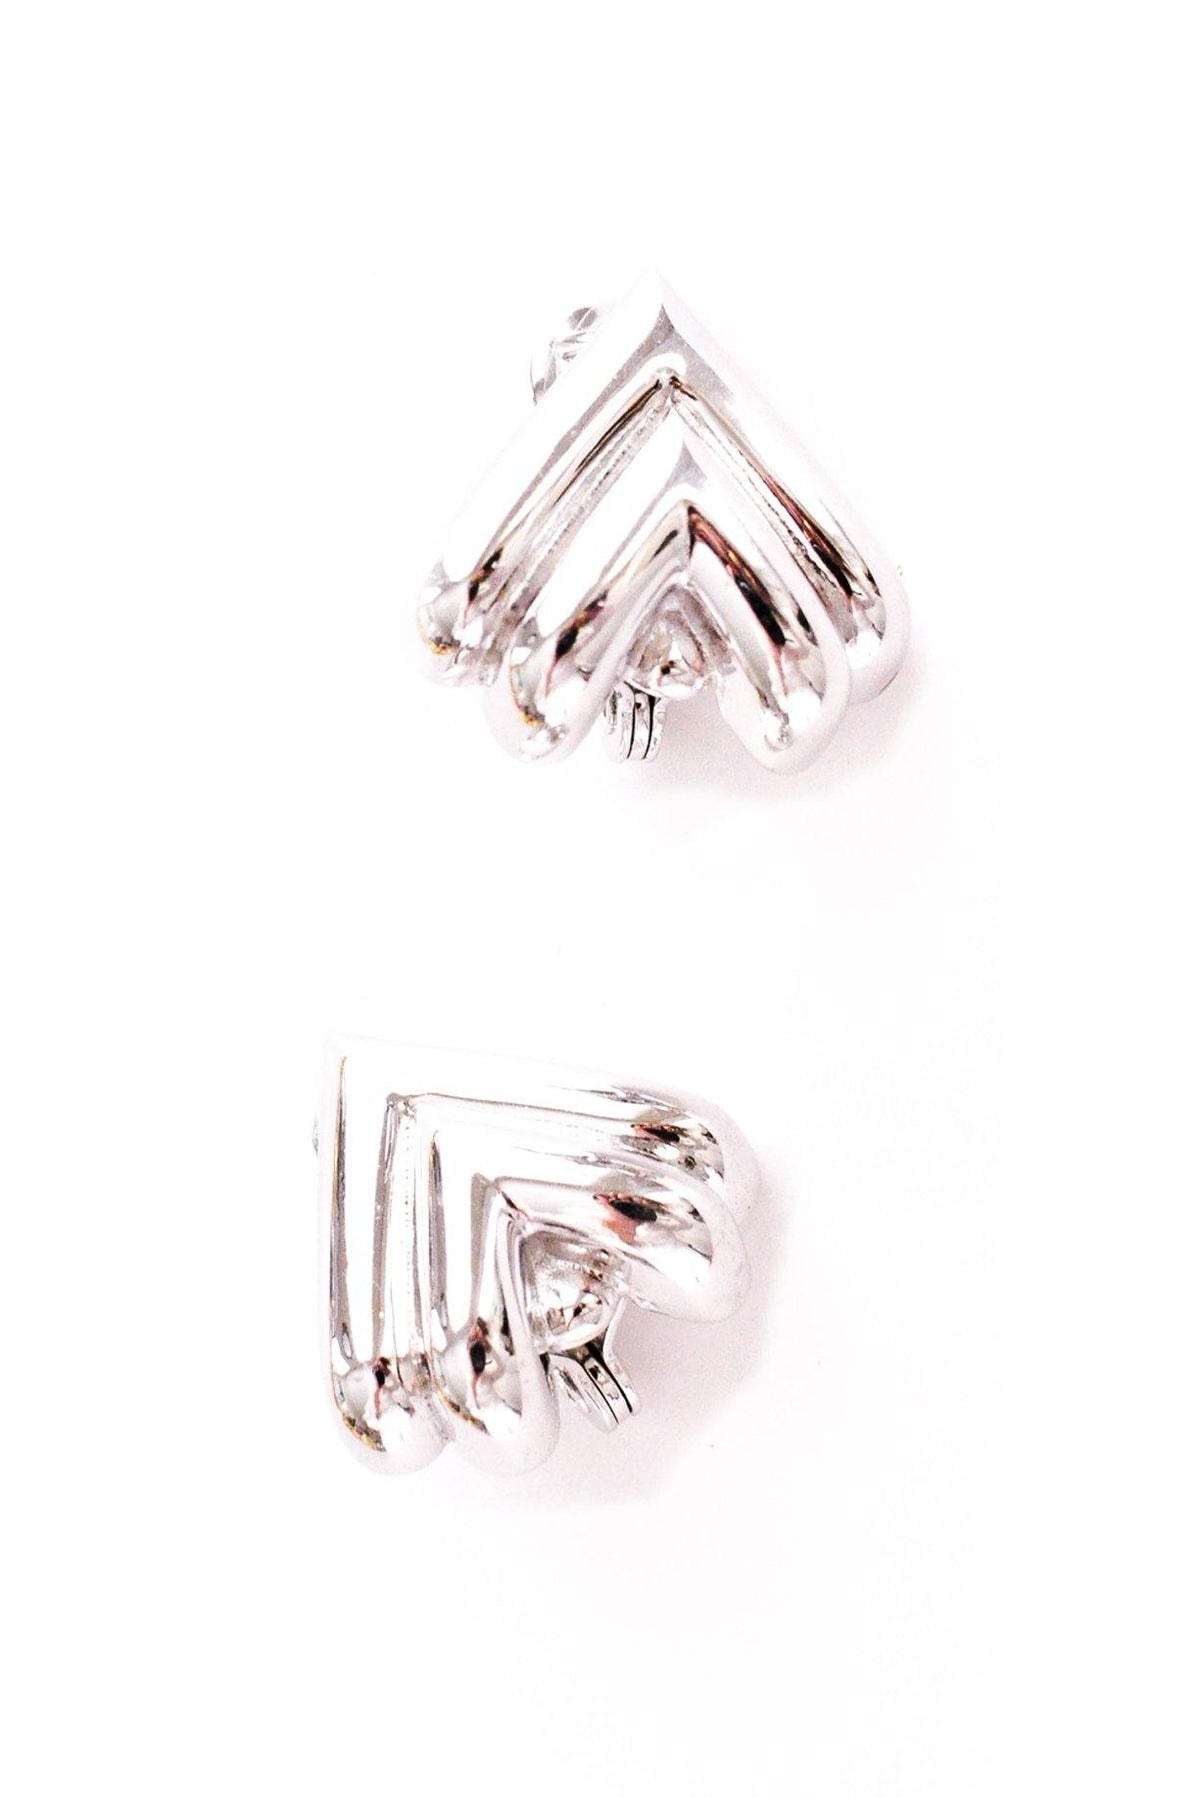 Vintage silver chunky triangle earrings from Sweet & Spark.